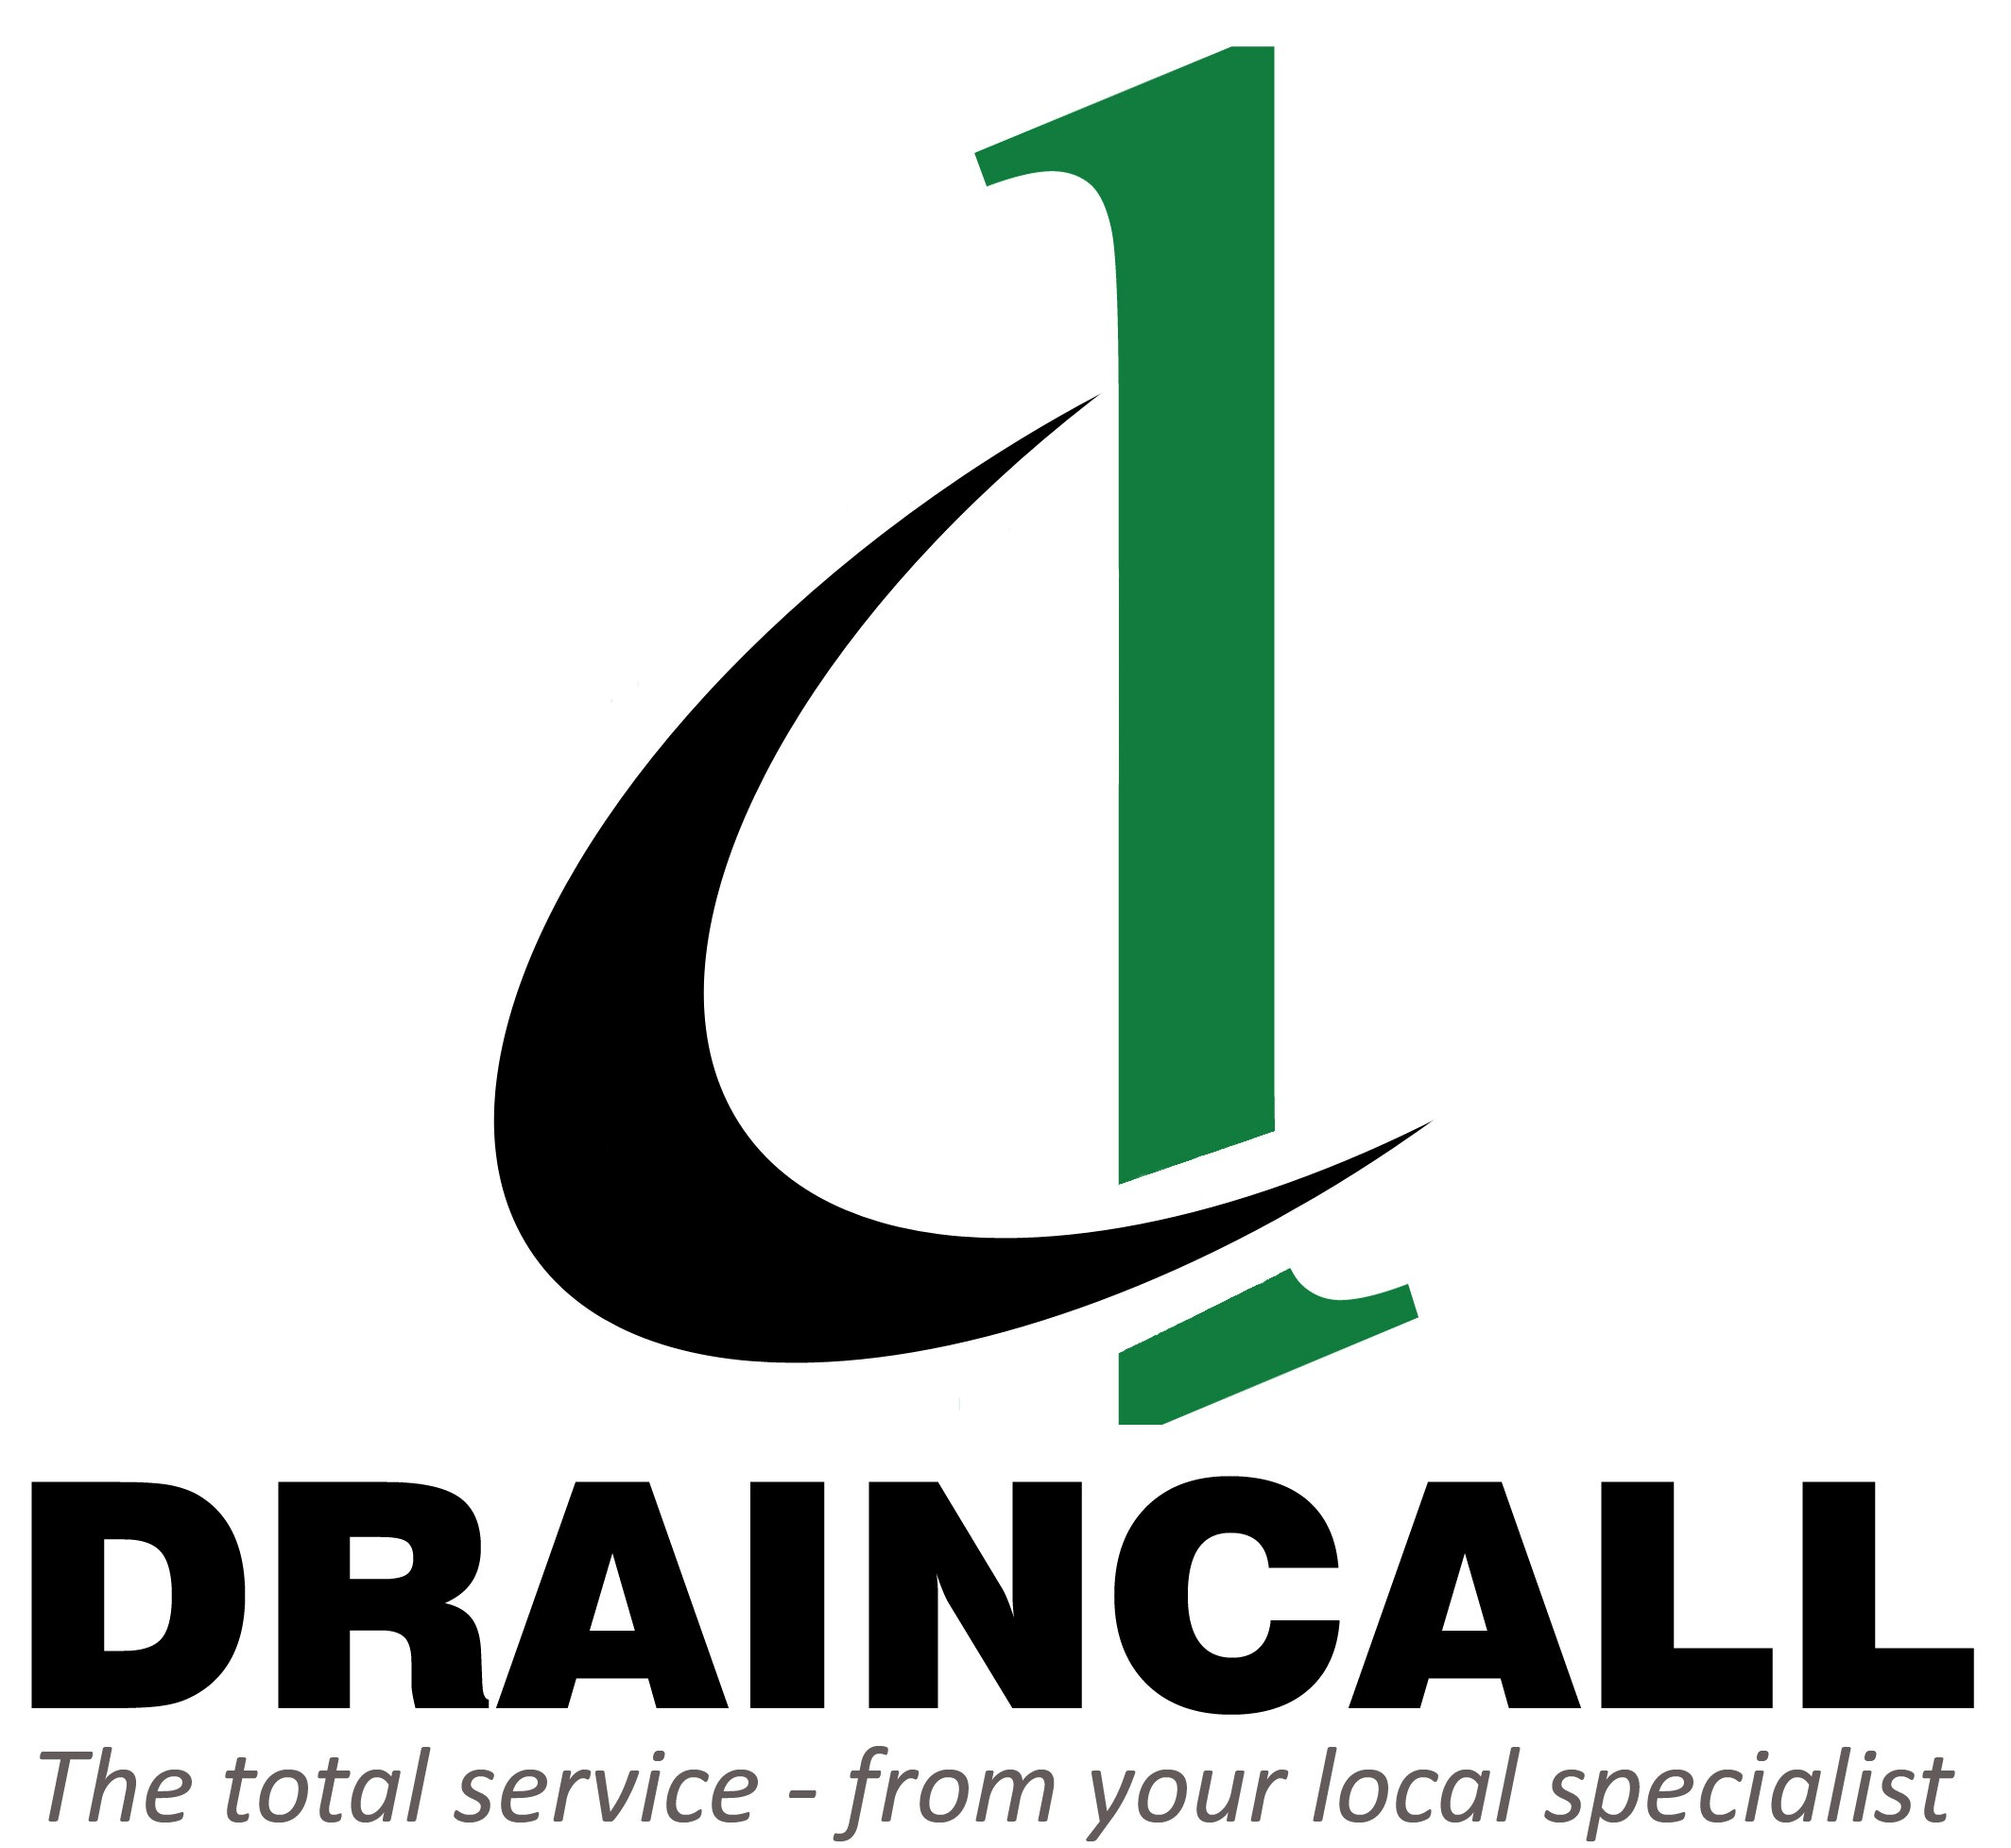 Draincall Services Ltd